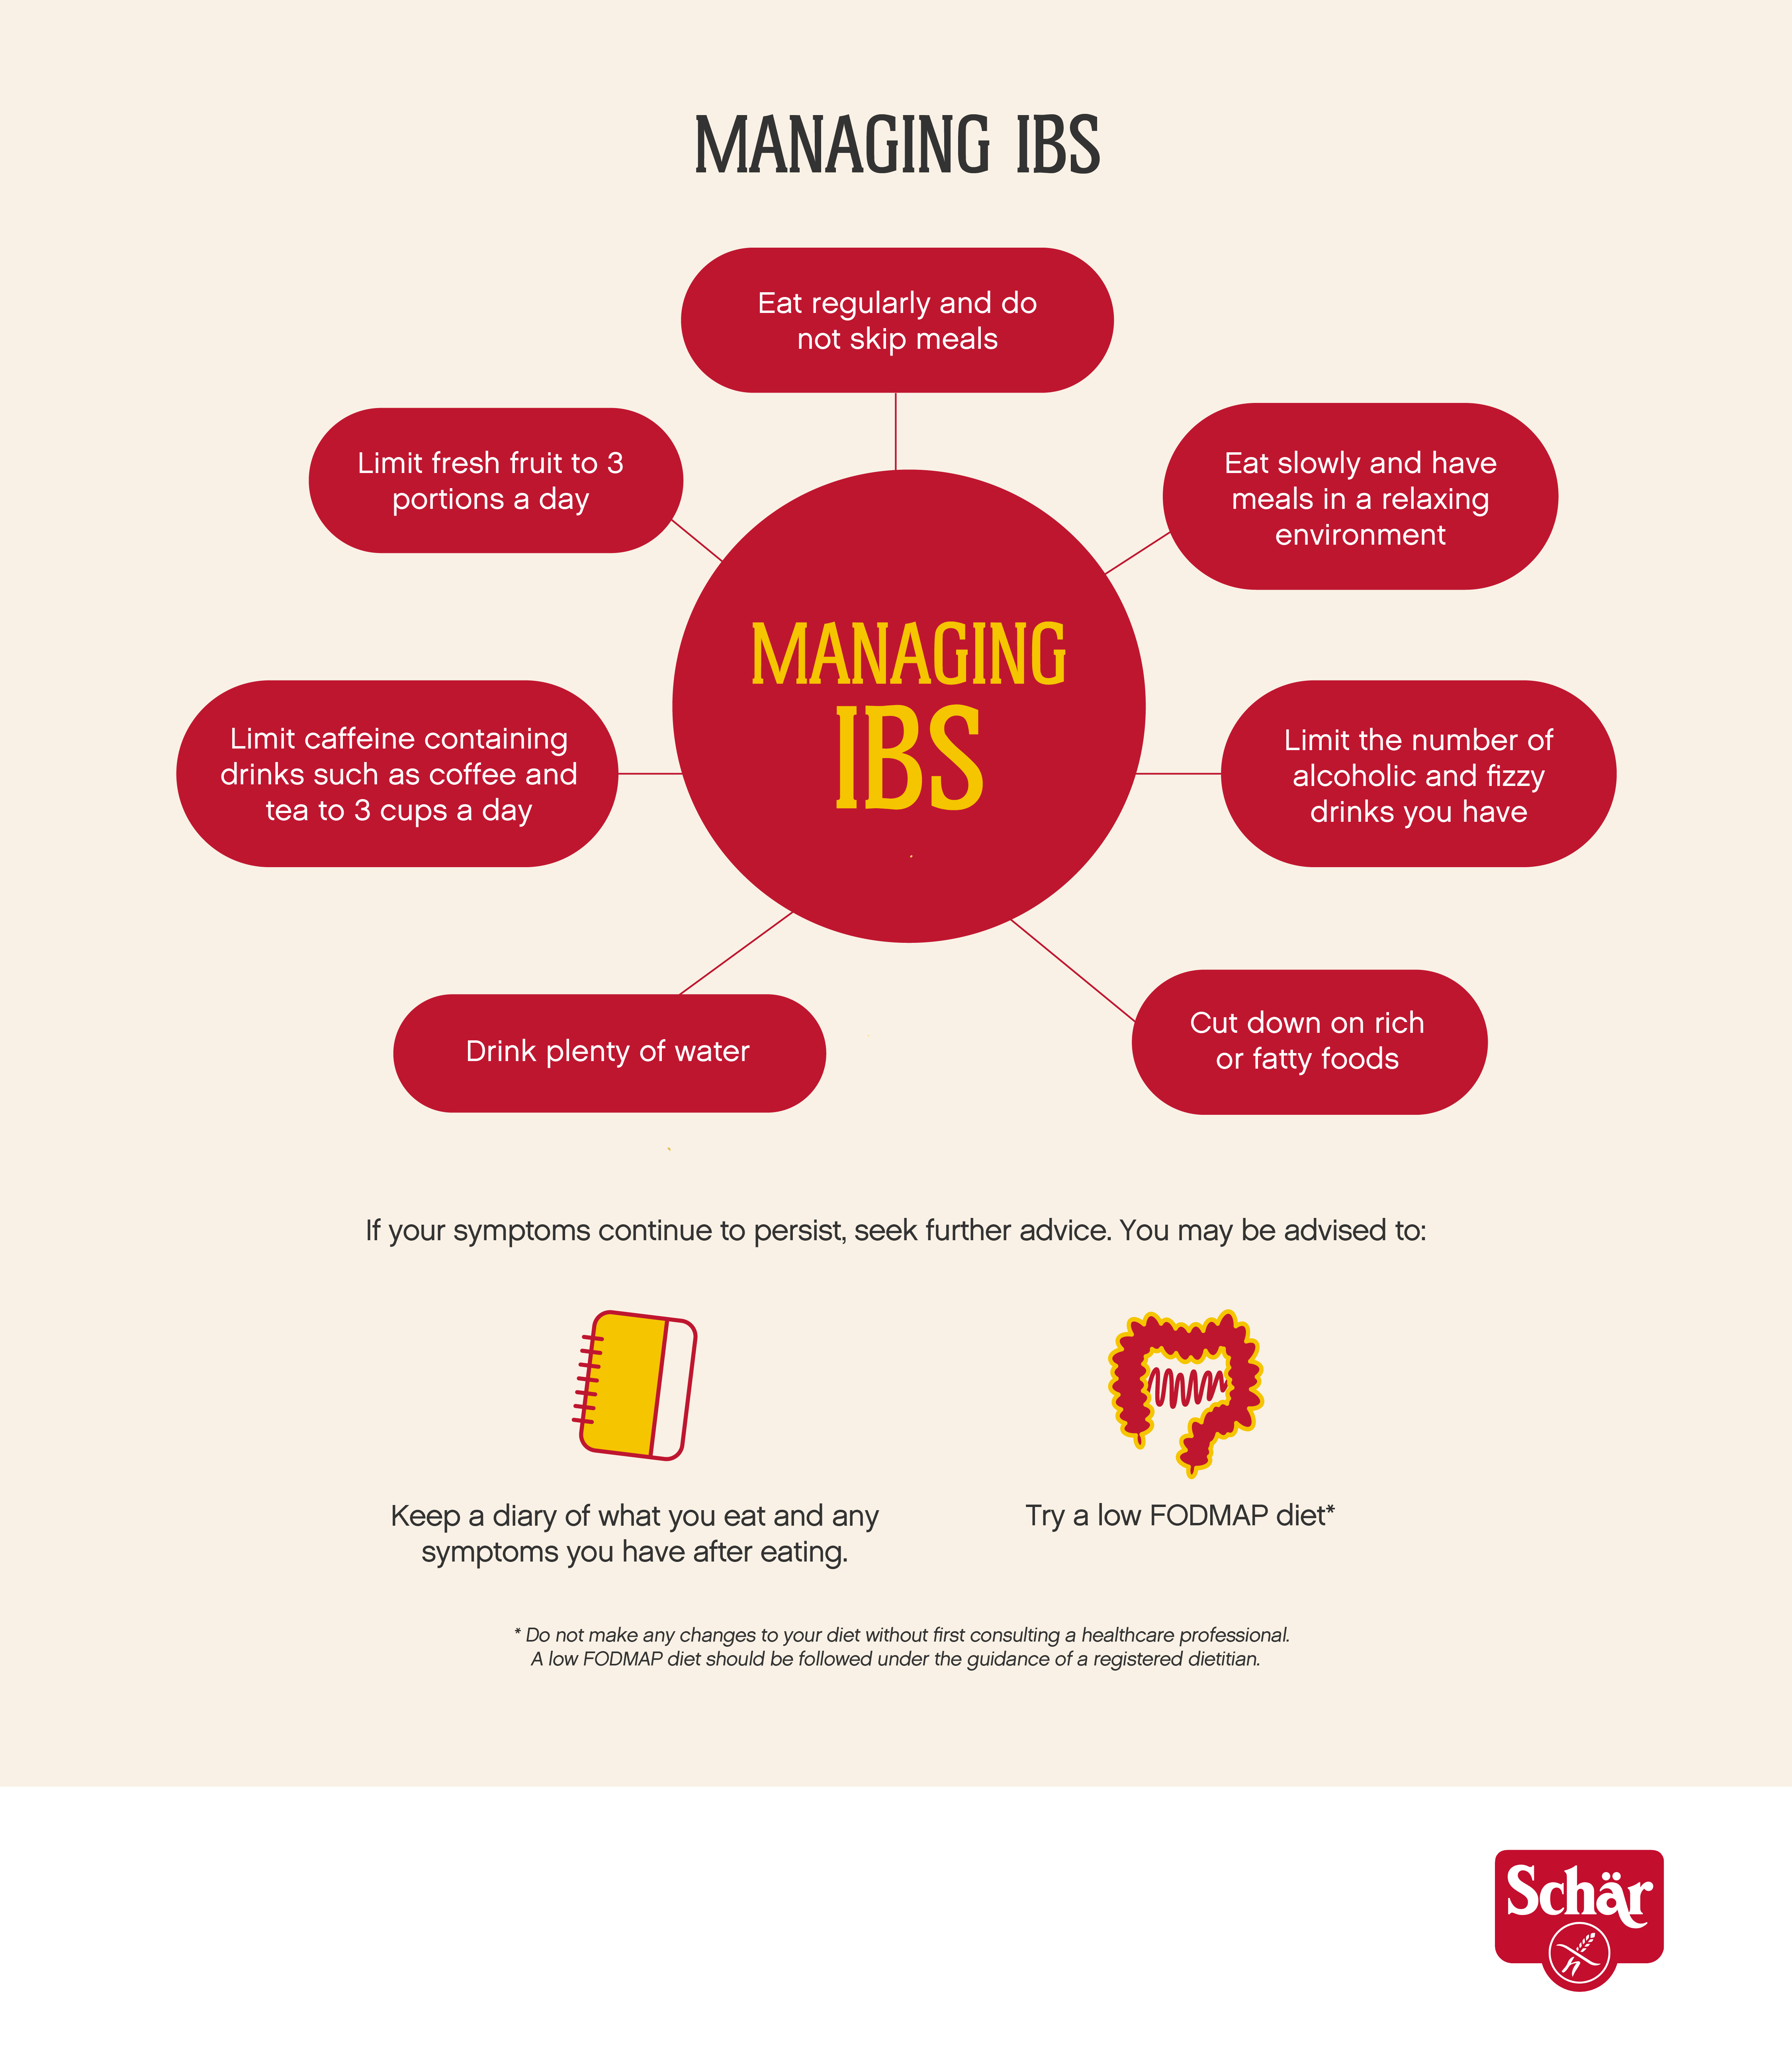 Infographic showing ways to ease IBS, all also mentioned in the text except: 1. not skipping meals and 2. cutting down on fatty foods